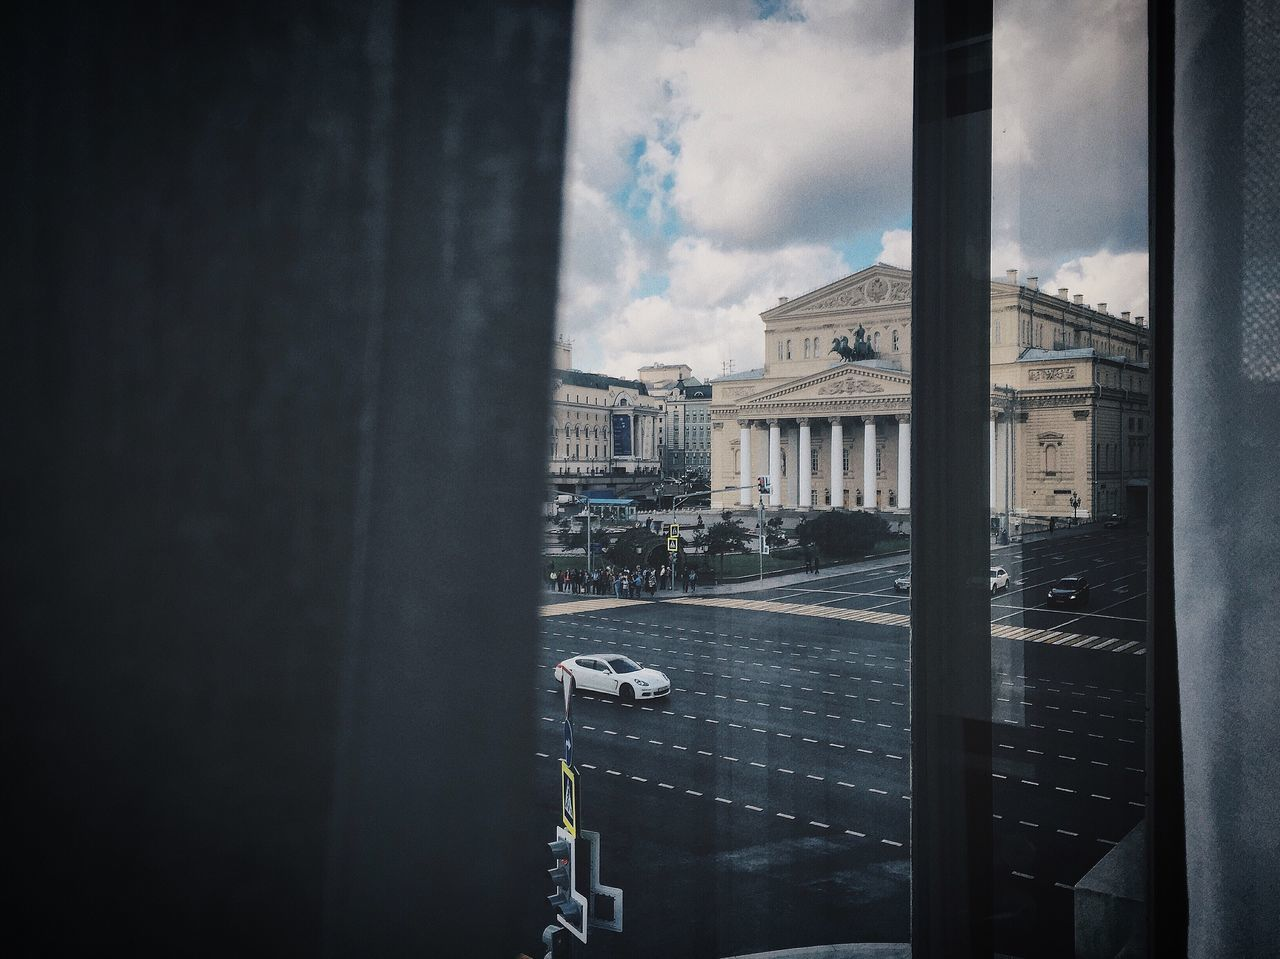 Moscow Big Theatre #Ballet From My Point Of View From Window Window Traffic Streetphotography